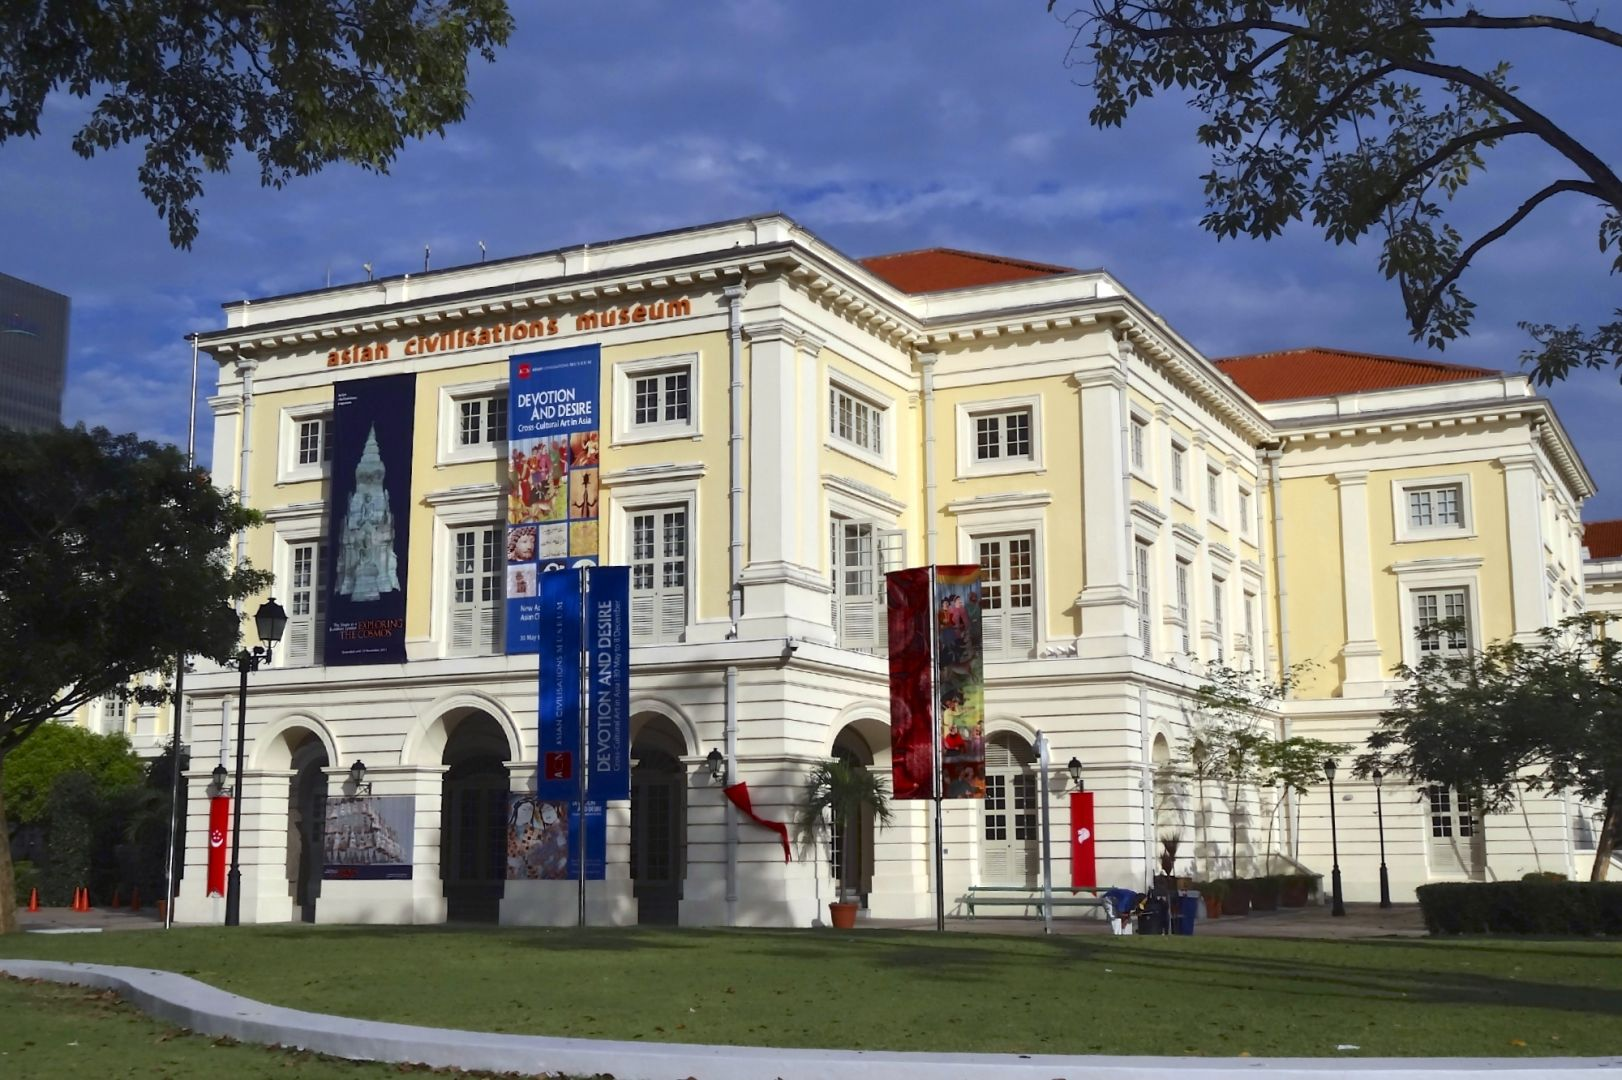 asian civilization meuseum - things to do in Singapore